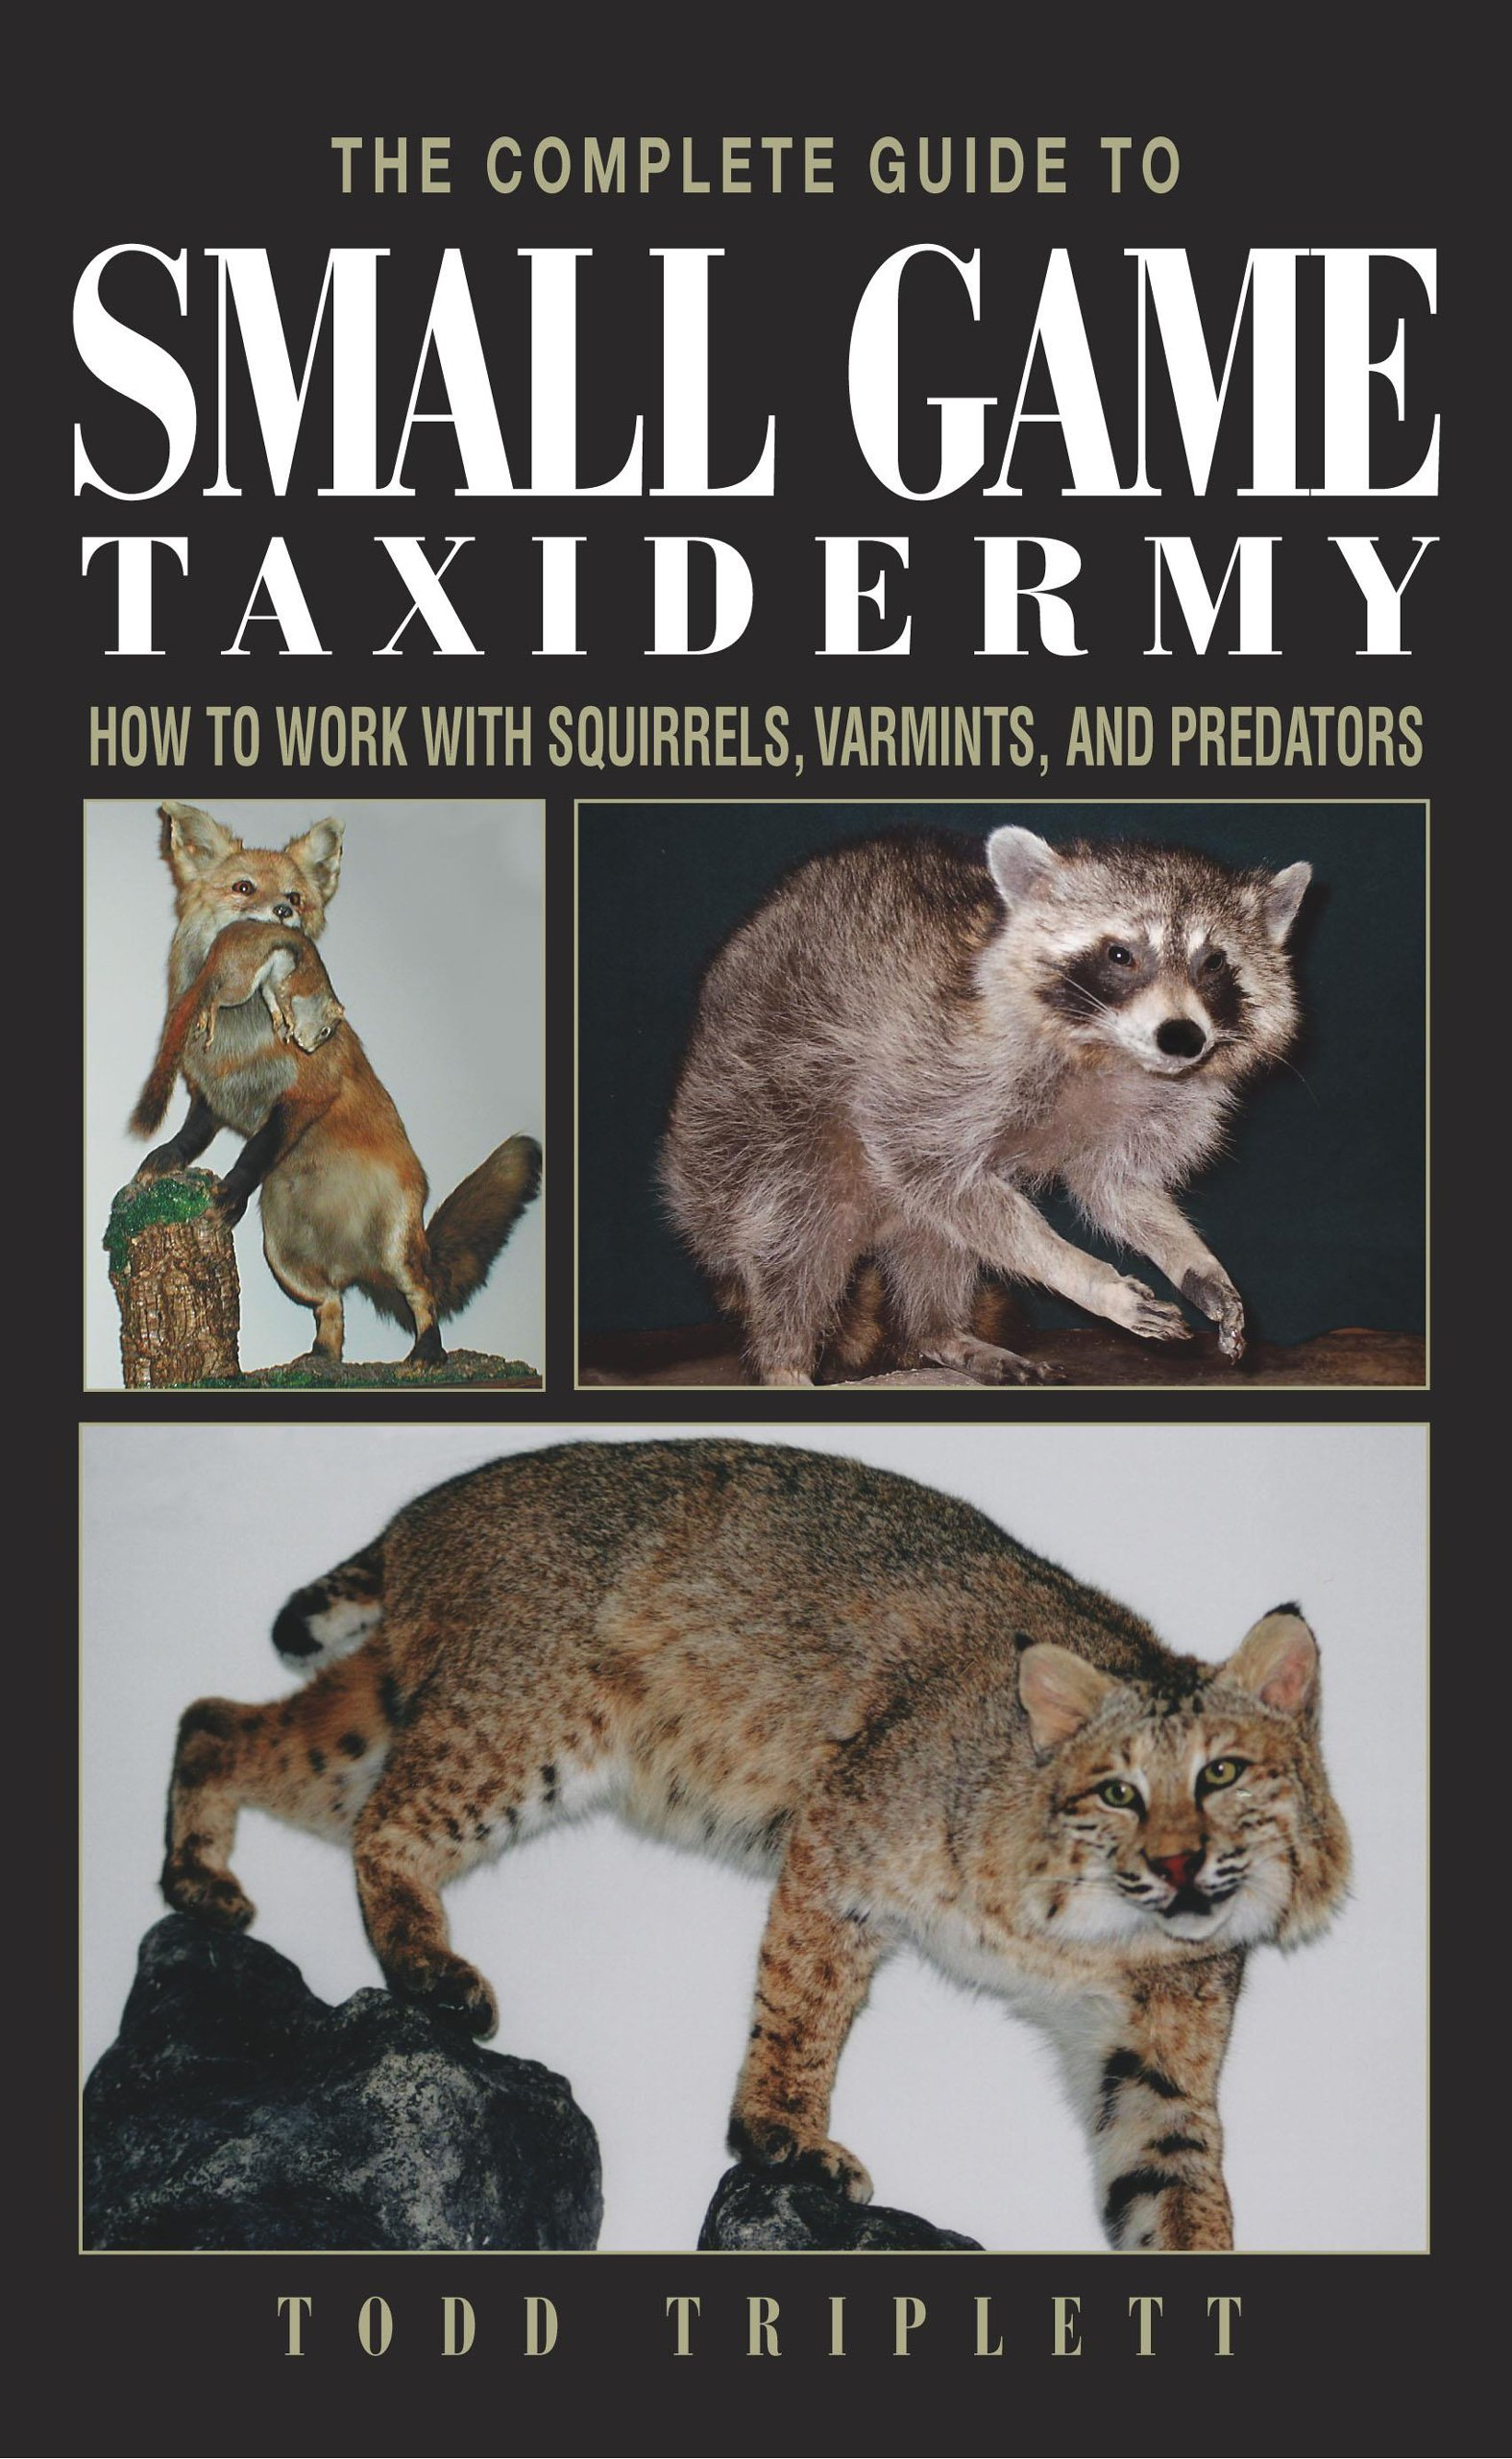 The complete guide to small game taxidermy how to work with the complete guide to small game taxidermy how to work with squirrels varmints and predators todd triplett 9781592281459 amazon books solutioingenieria Image collections